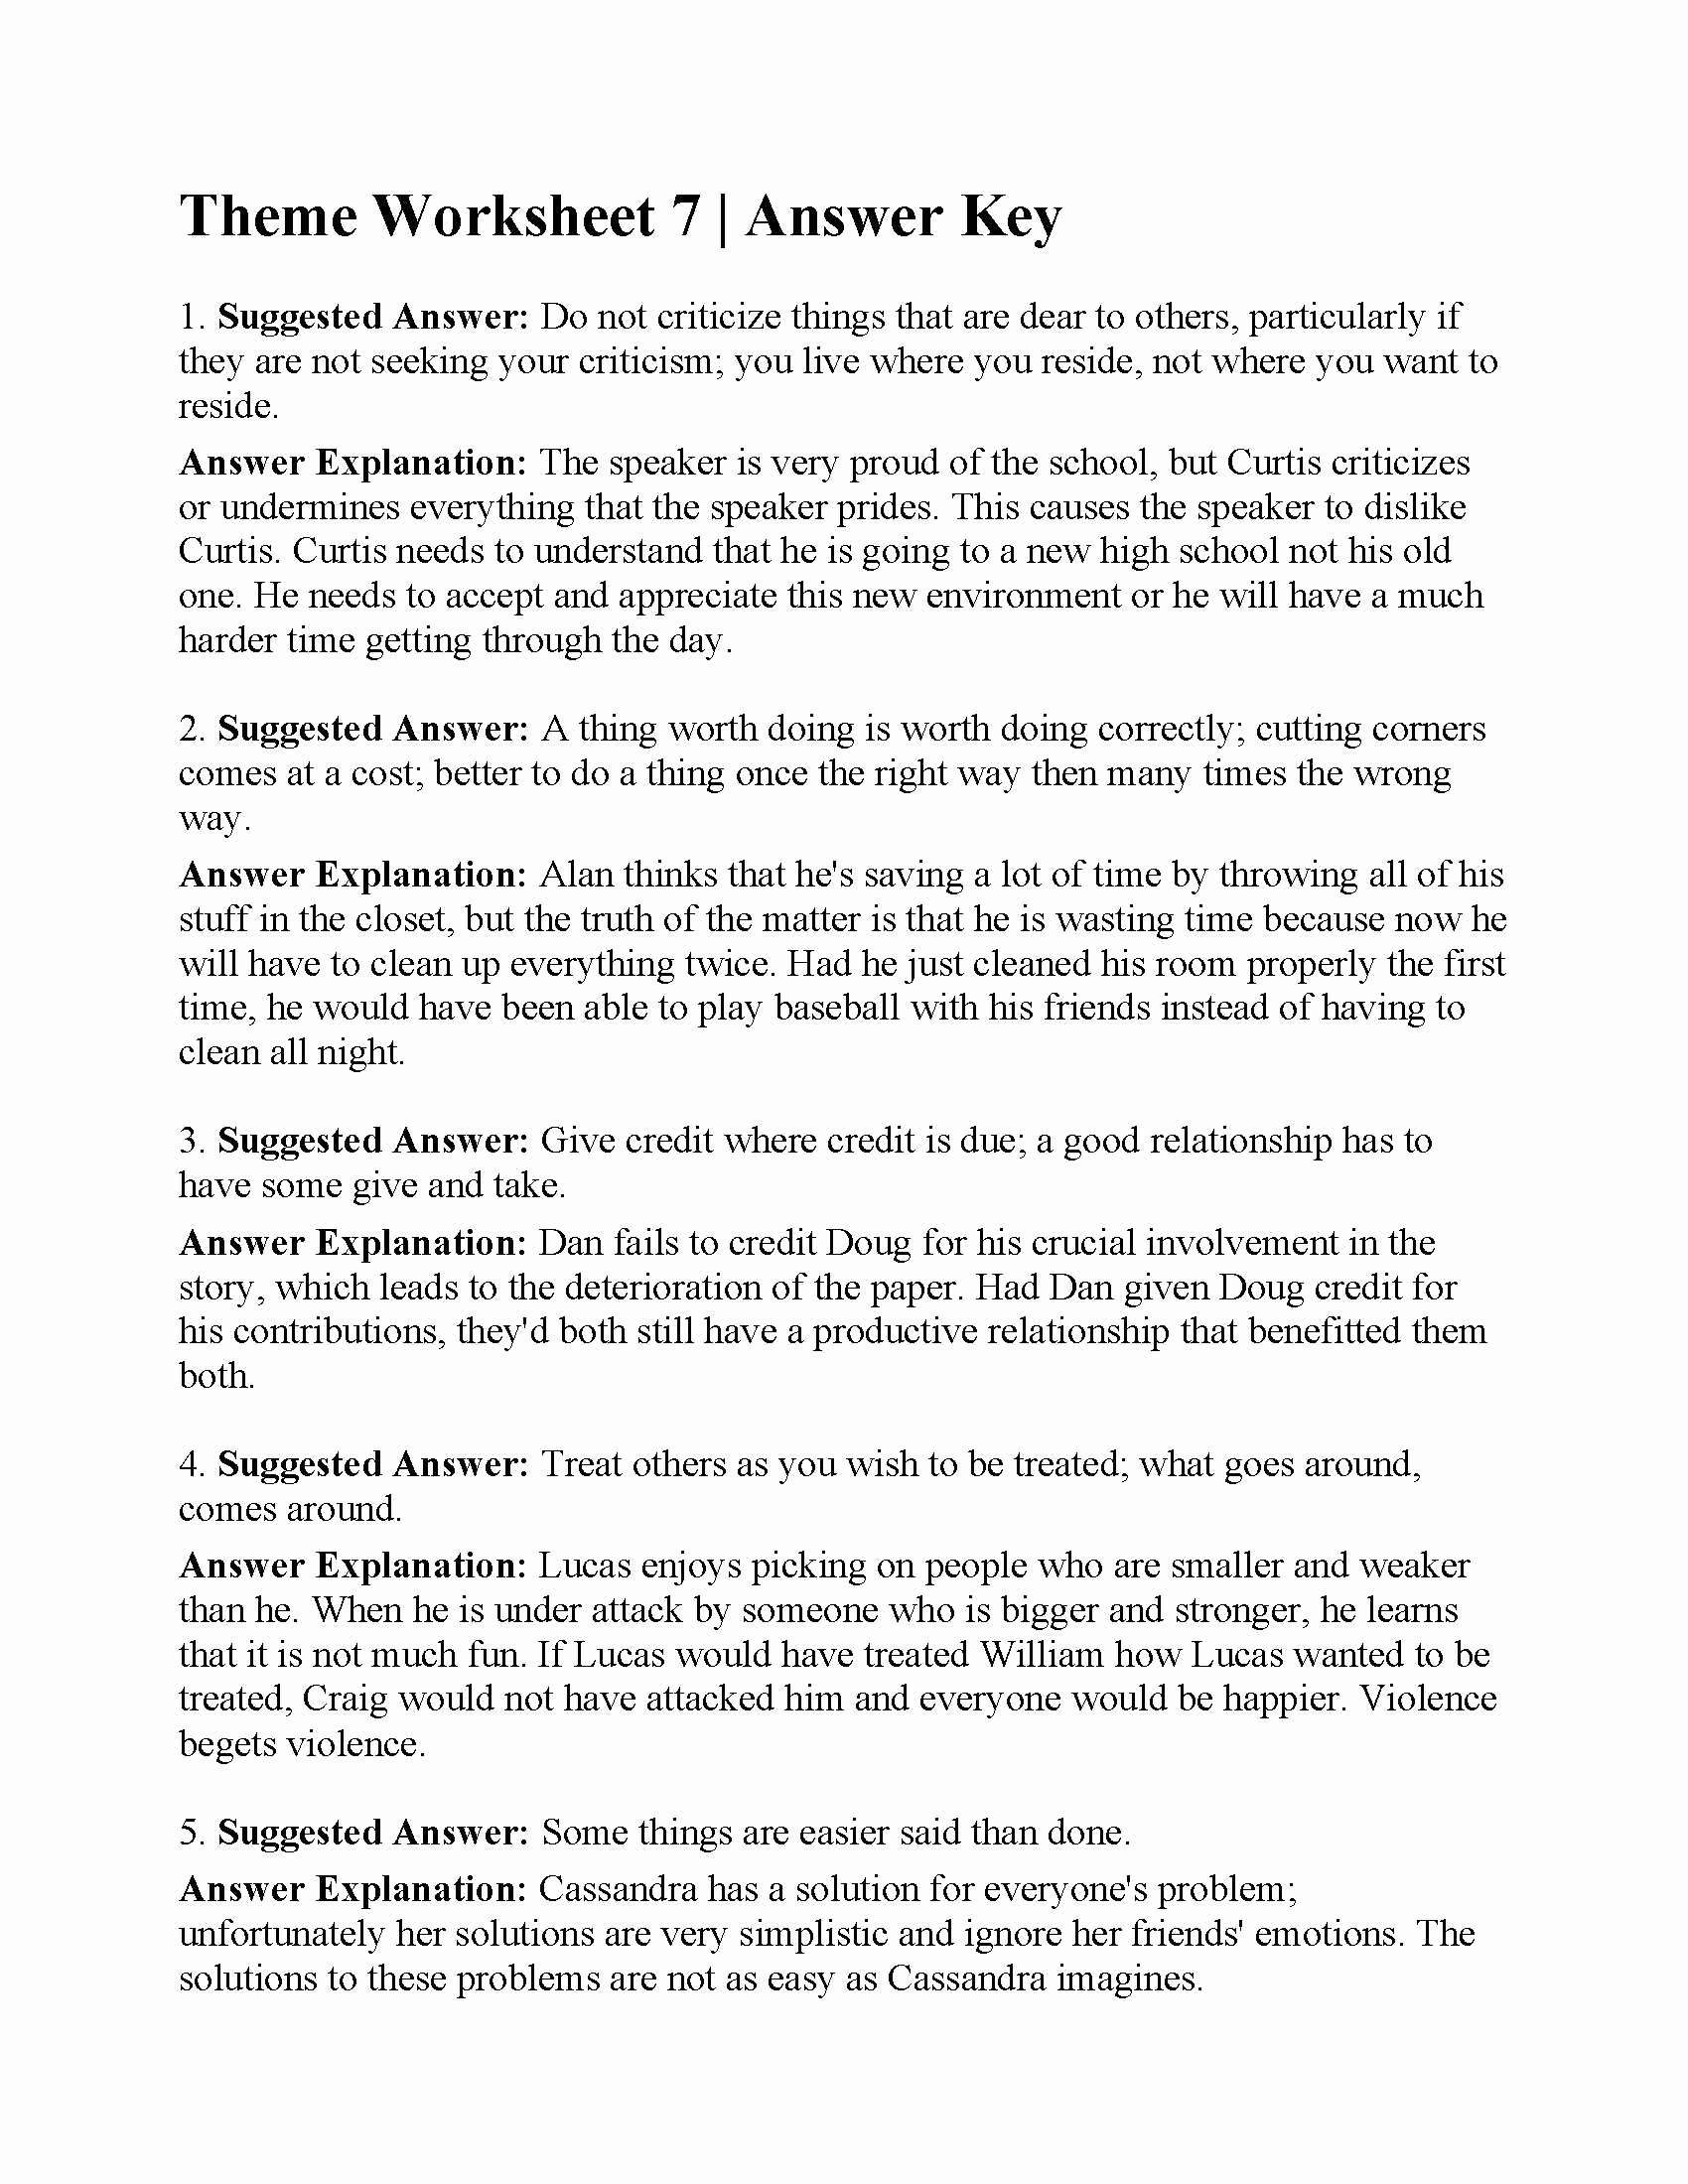 Theme Worksheets 5th Grade Luxury 20 5th Grade theme Worksheets